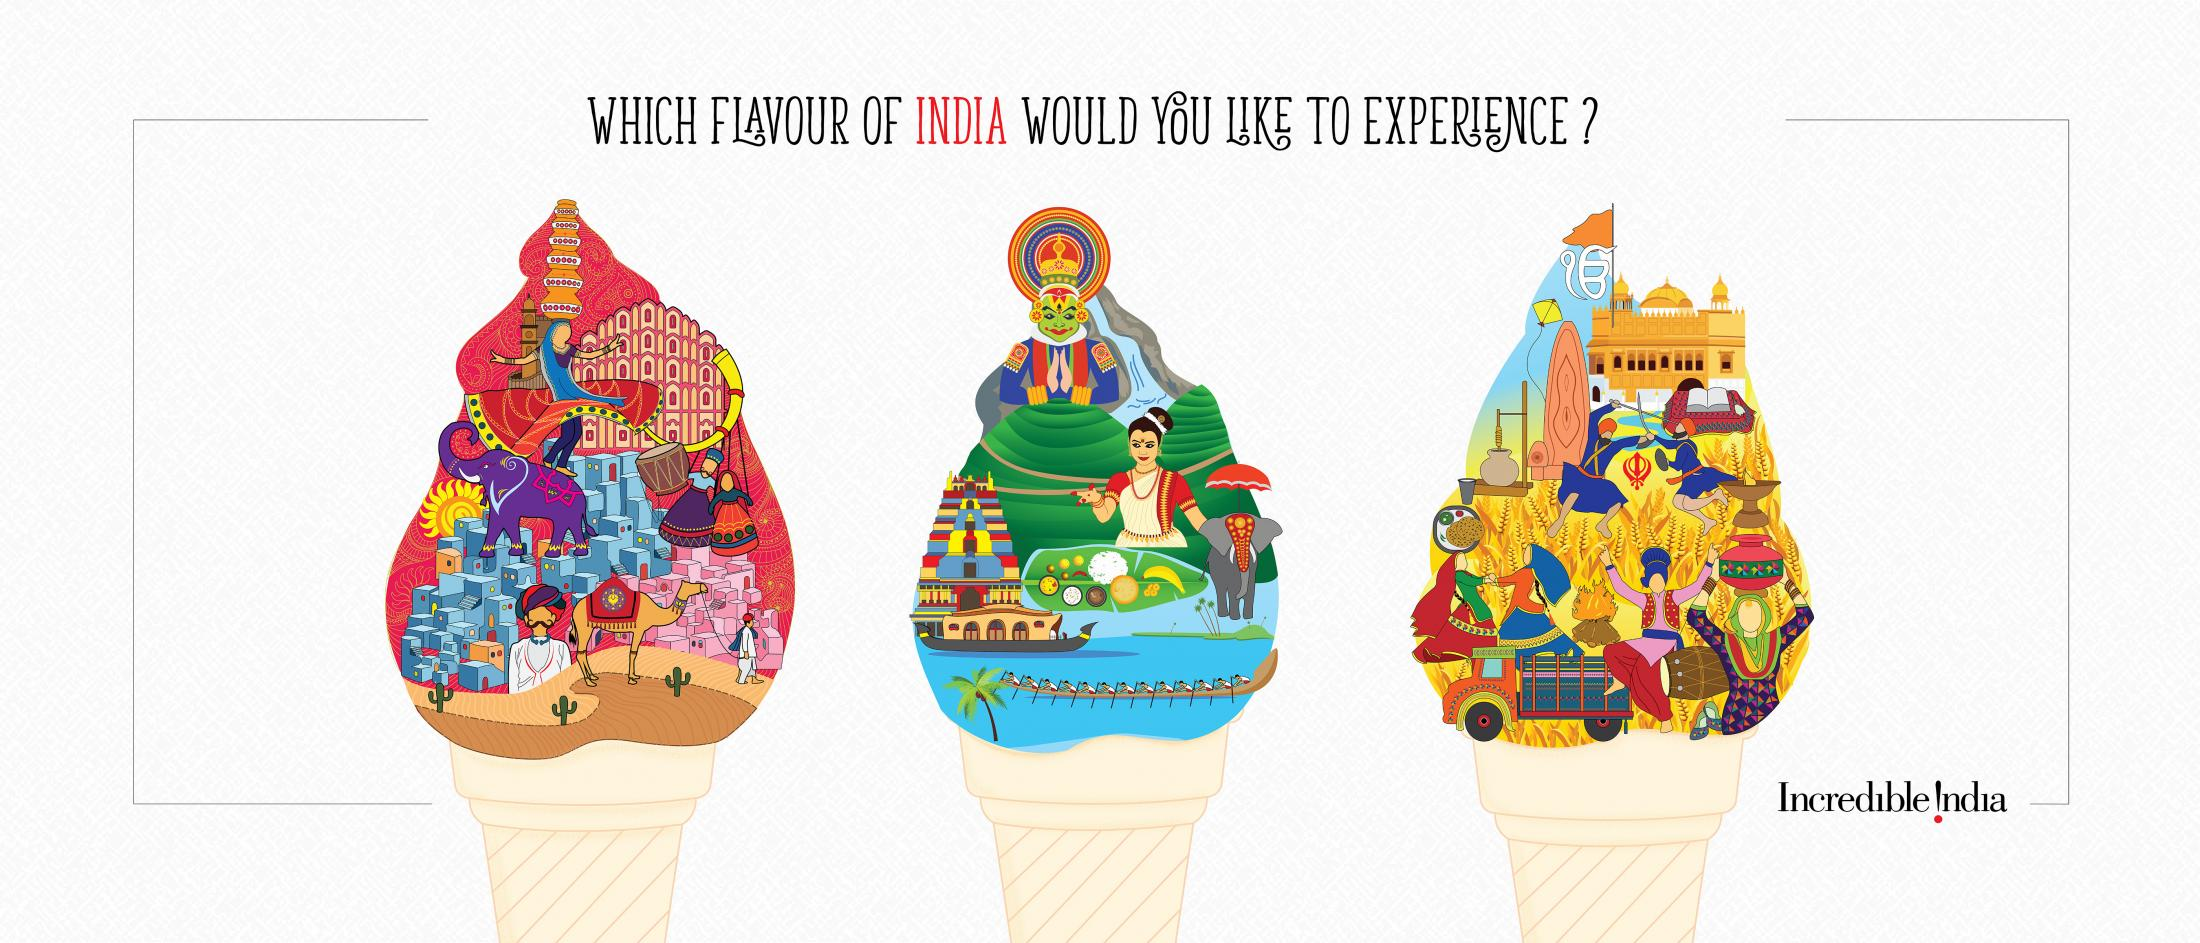 Incredible India Print Ad - Flavours of India